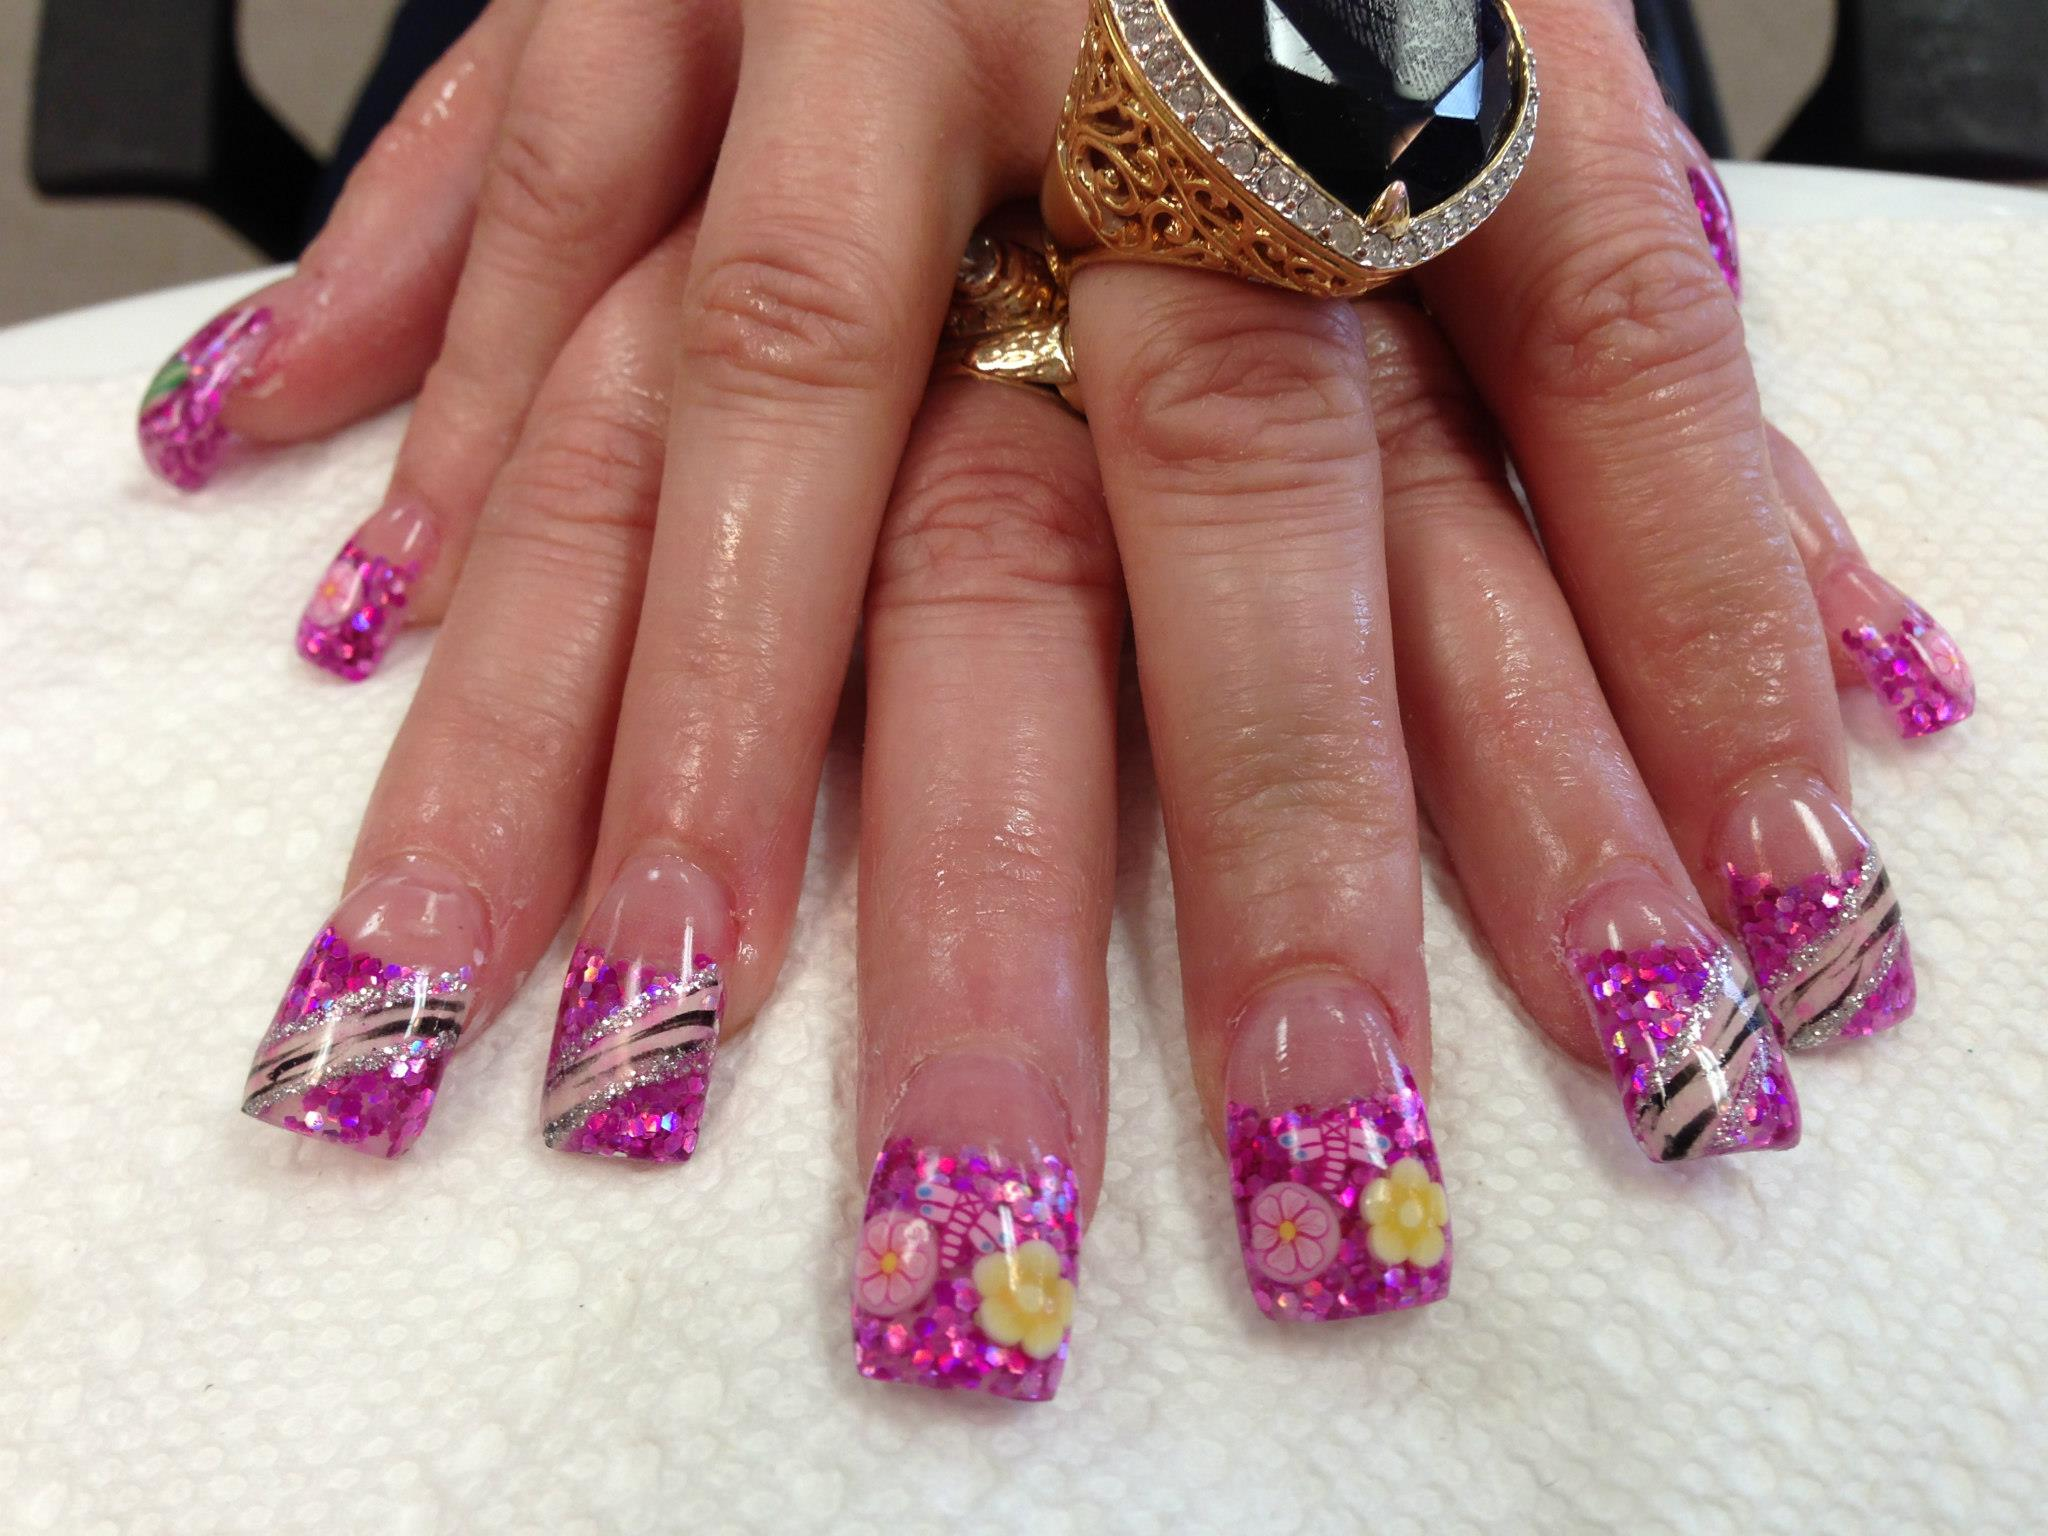 Kaleidoscope Zebra Nail Art Designs By Top Nails Clarksville Tn